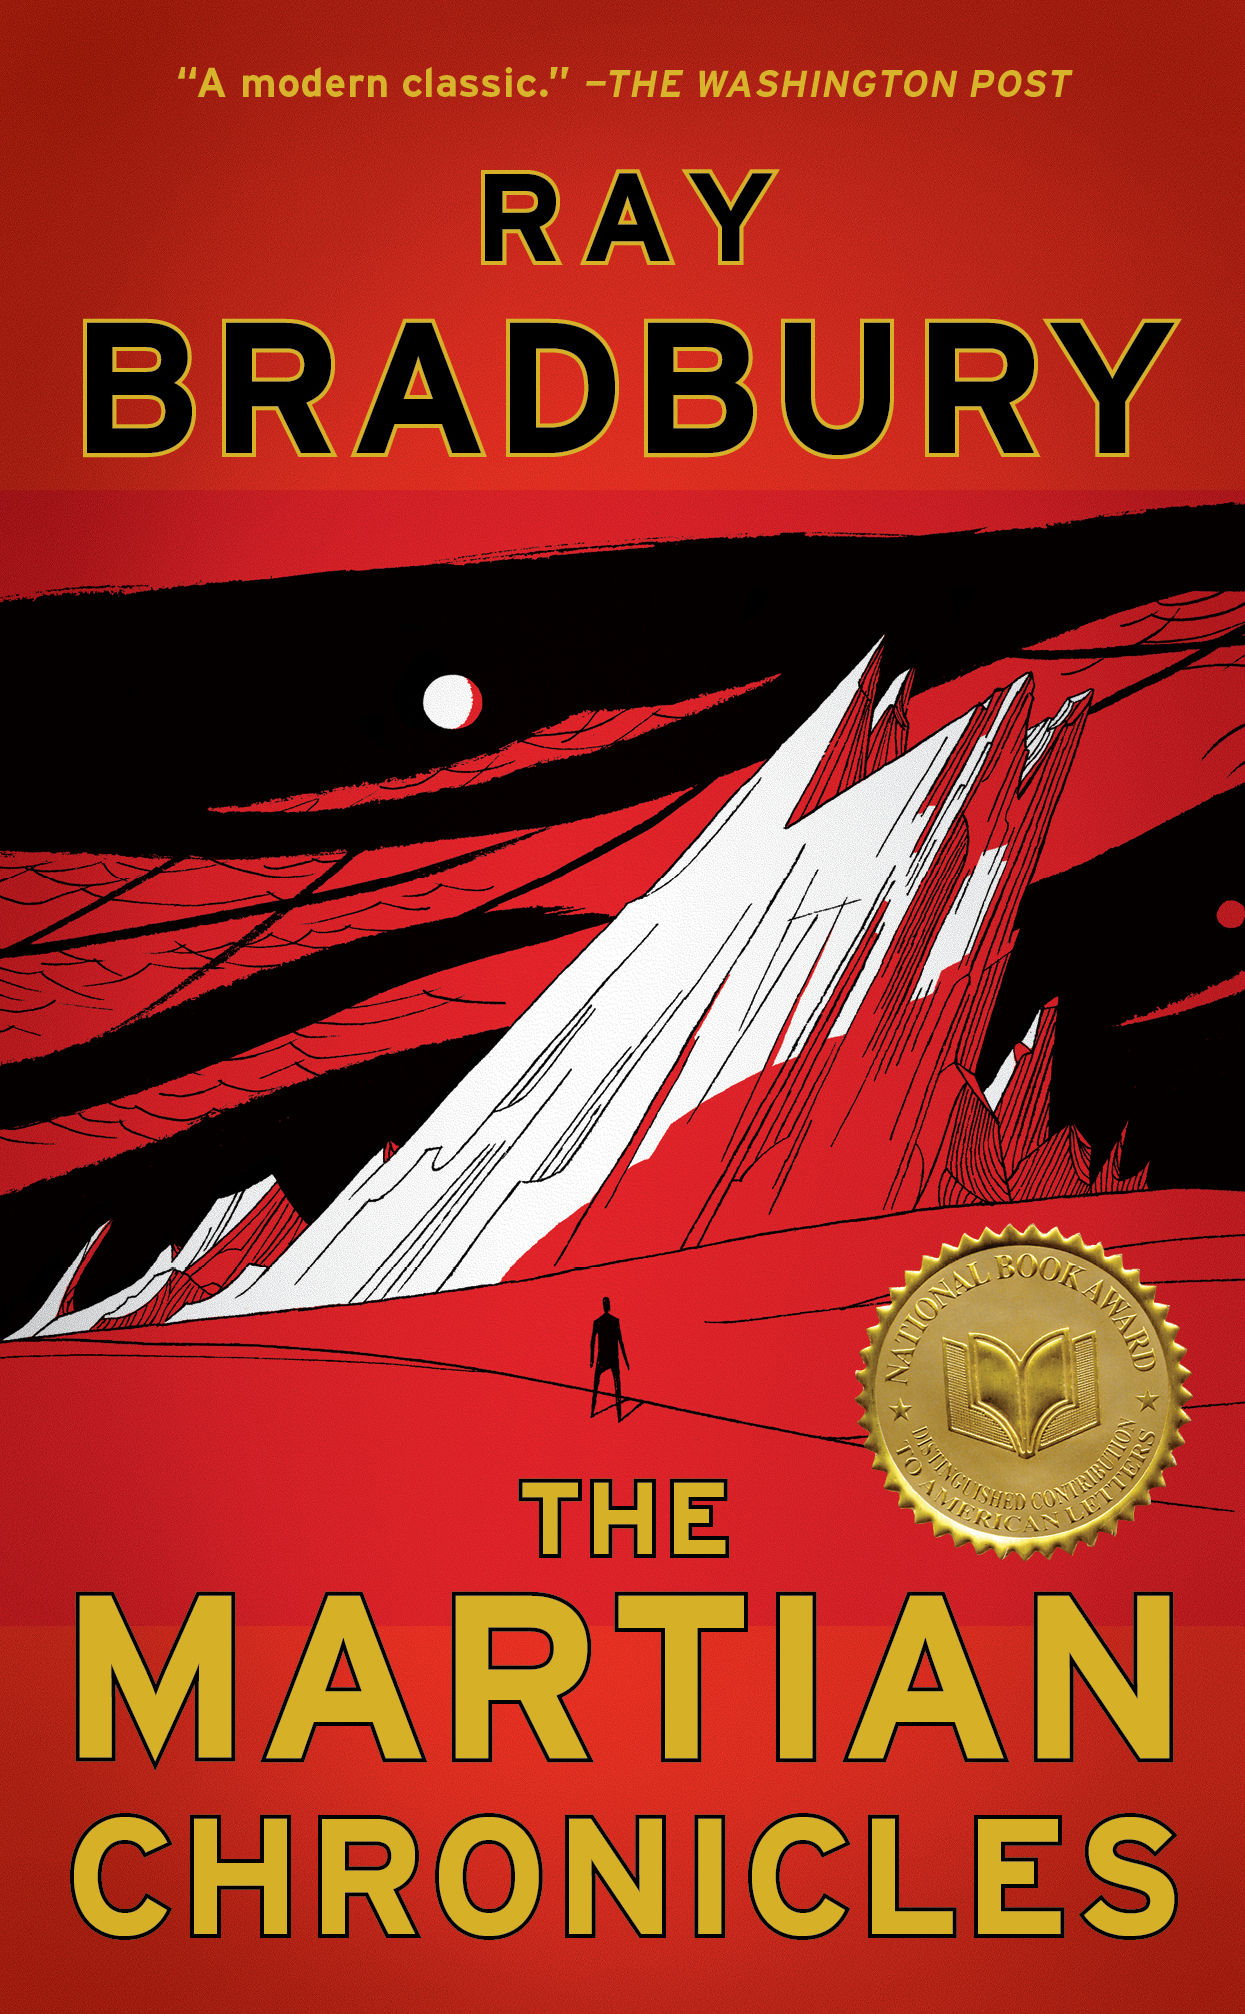 The Martian Chronicles Overview